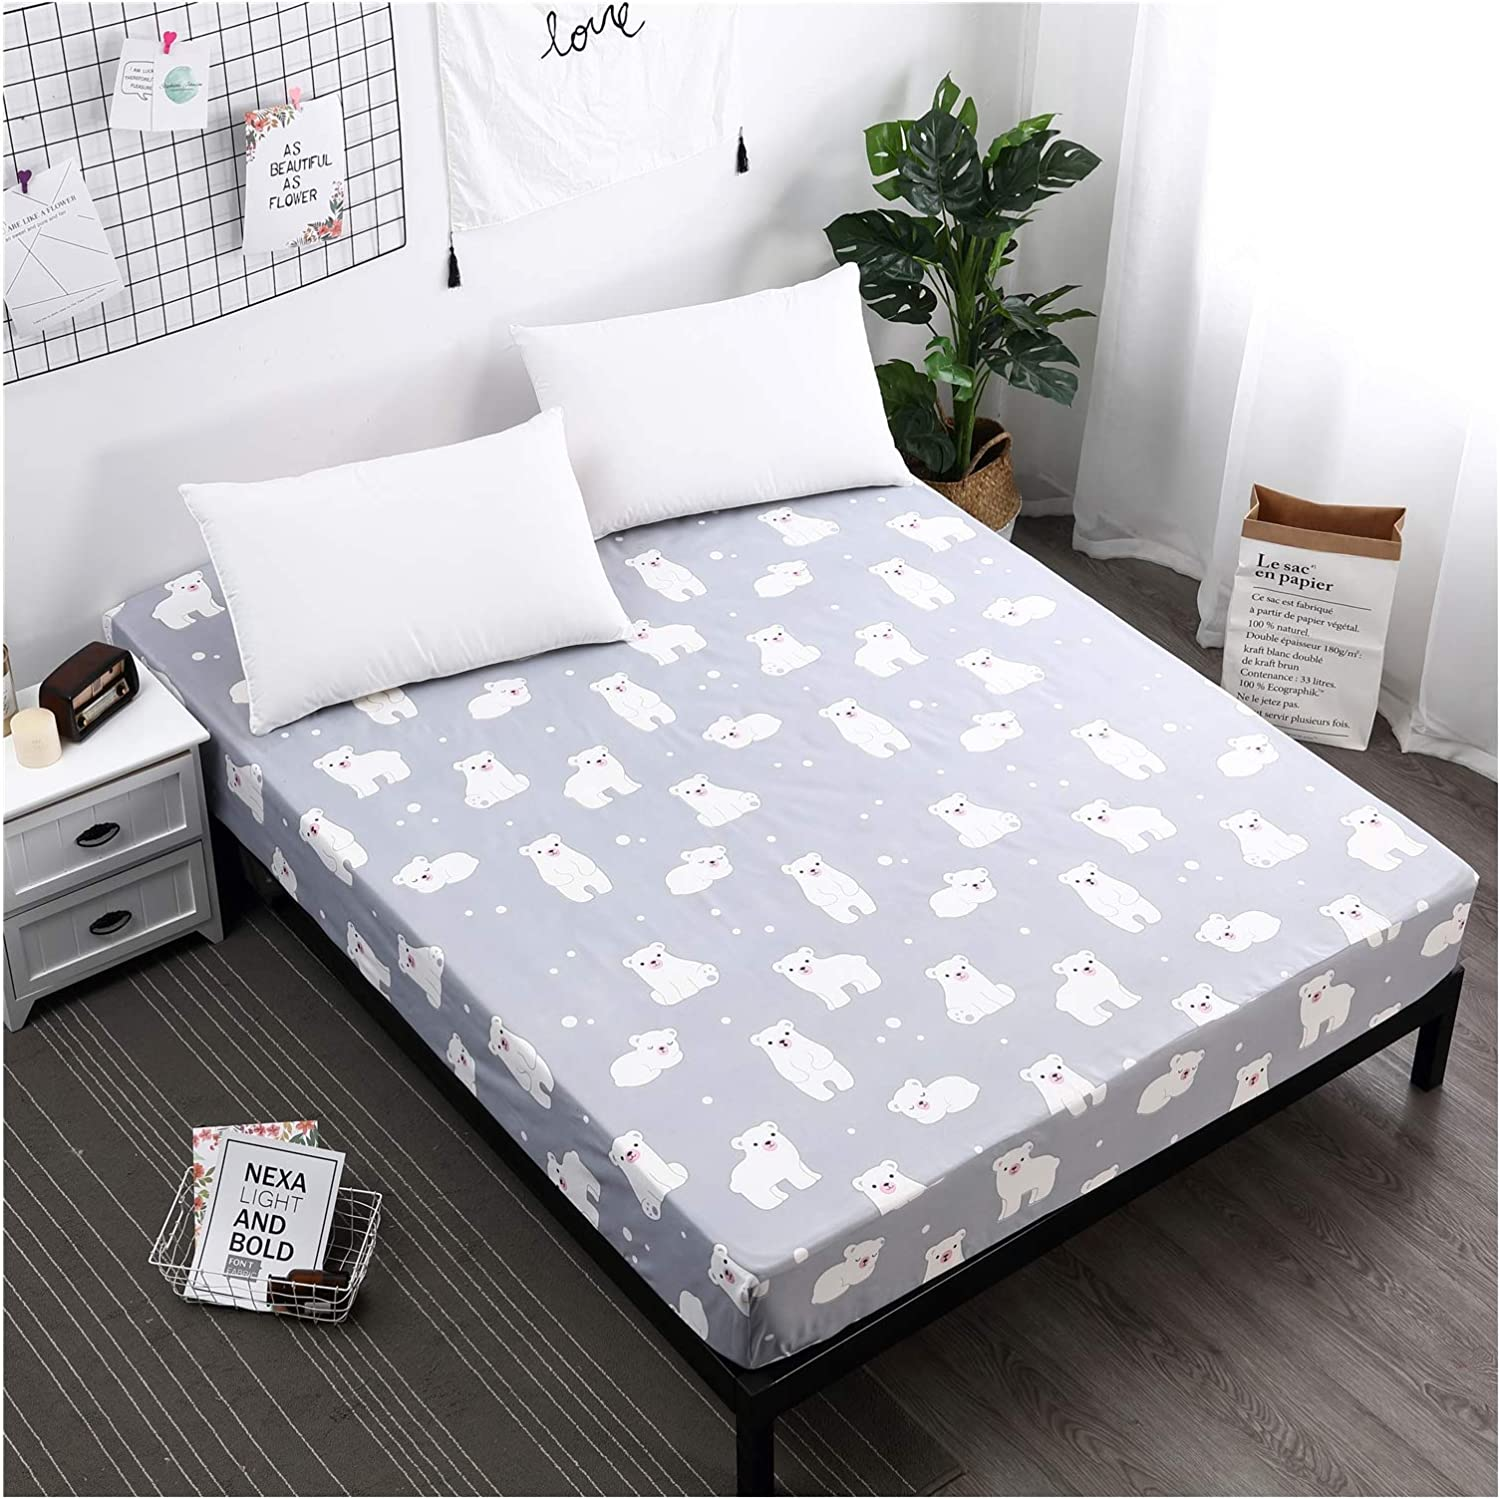 Advanced Hypoallergenic Waterproof Mattress Cover - Breathable Mattress Cover, Little White Bear,220X200+30cm